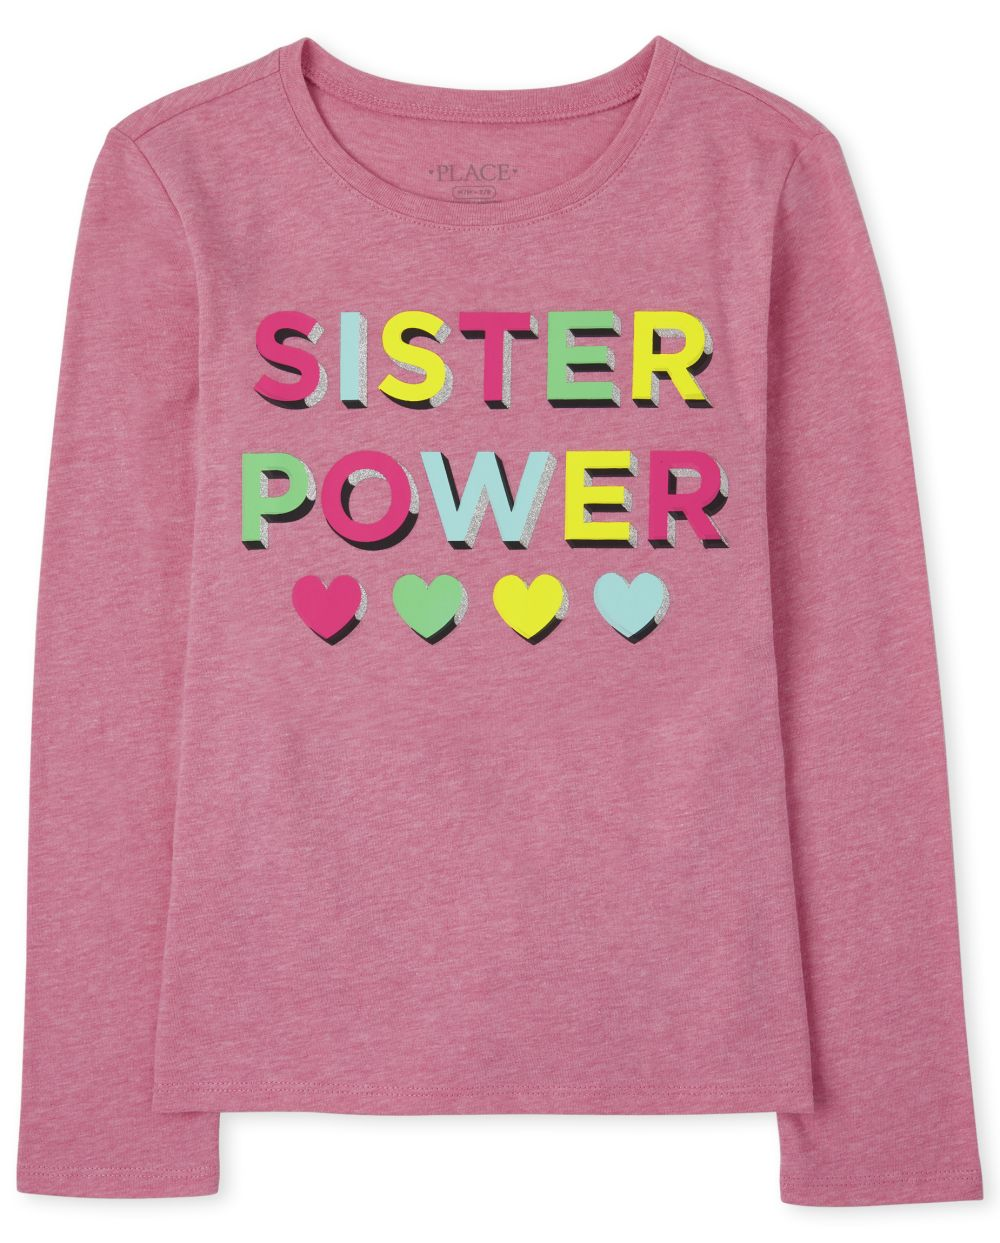 Sister Power Graphic Tee - Pink T-Shirt